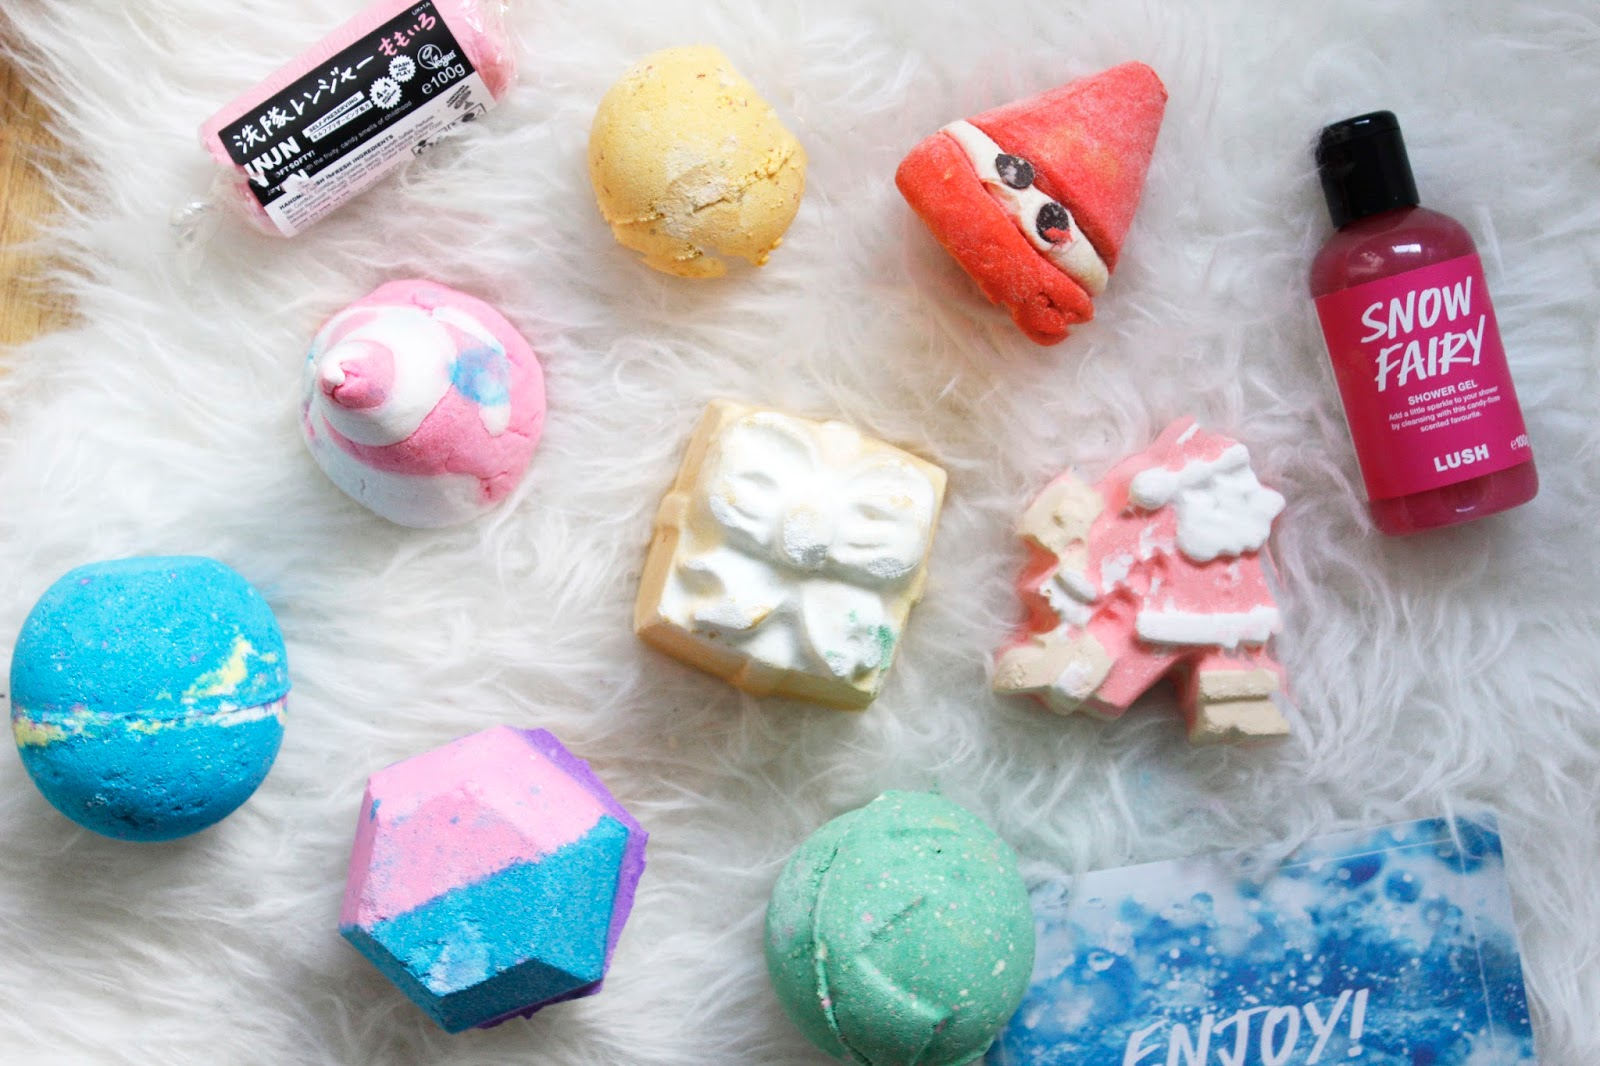 See The Stars - Lush Boxing Day Haul 2015